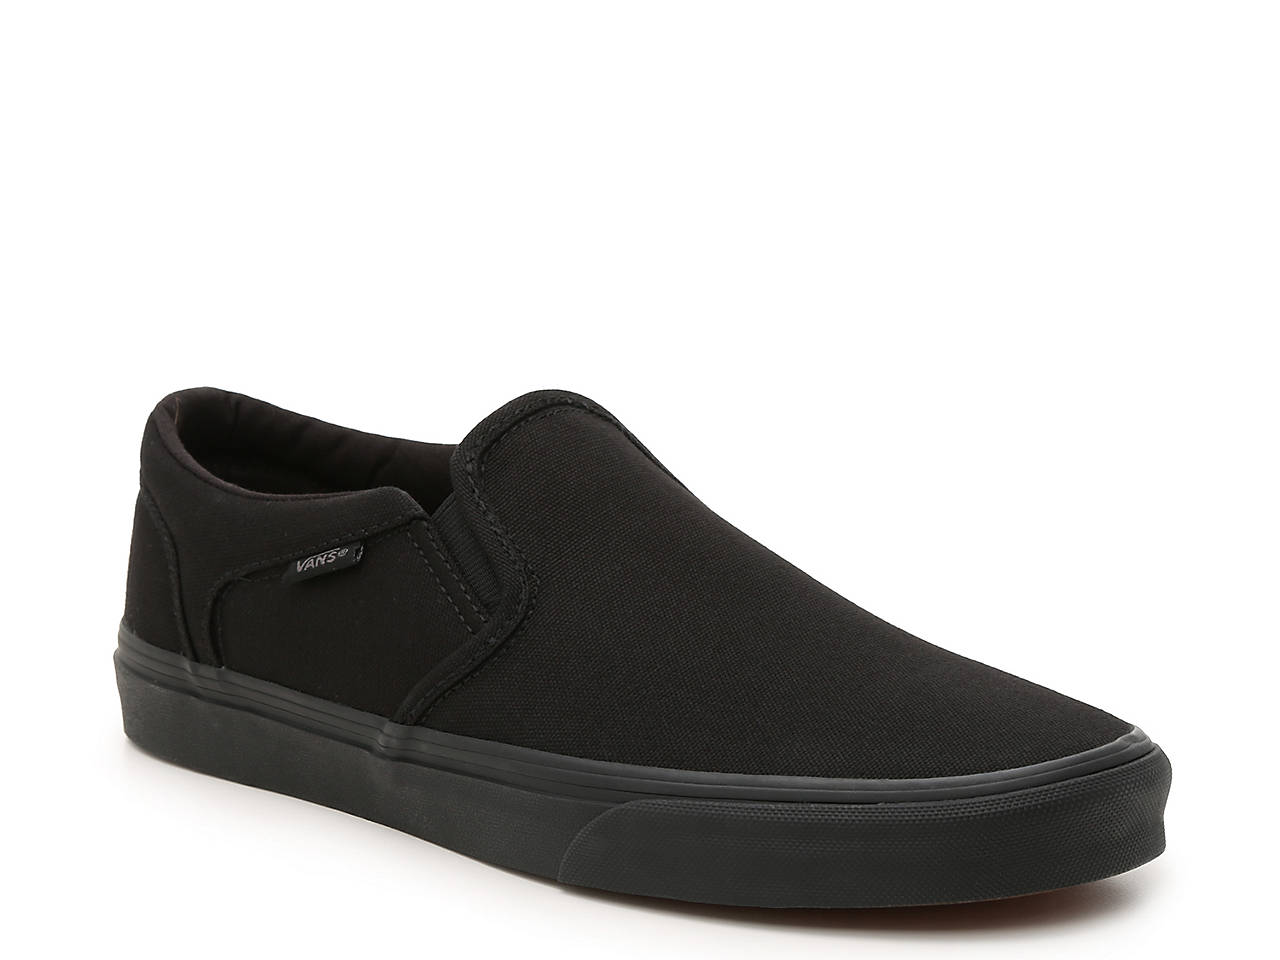 0253a02192 Vans Asher Slip-On Sneaker - Men s Men s Shoes